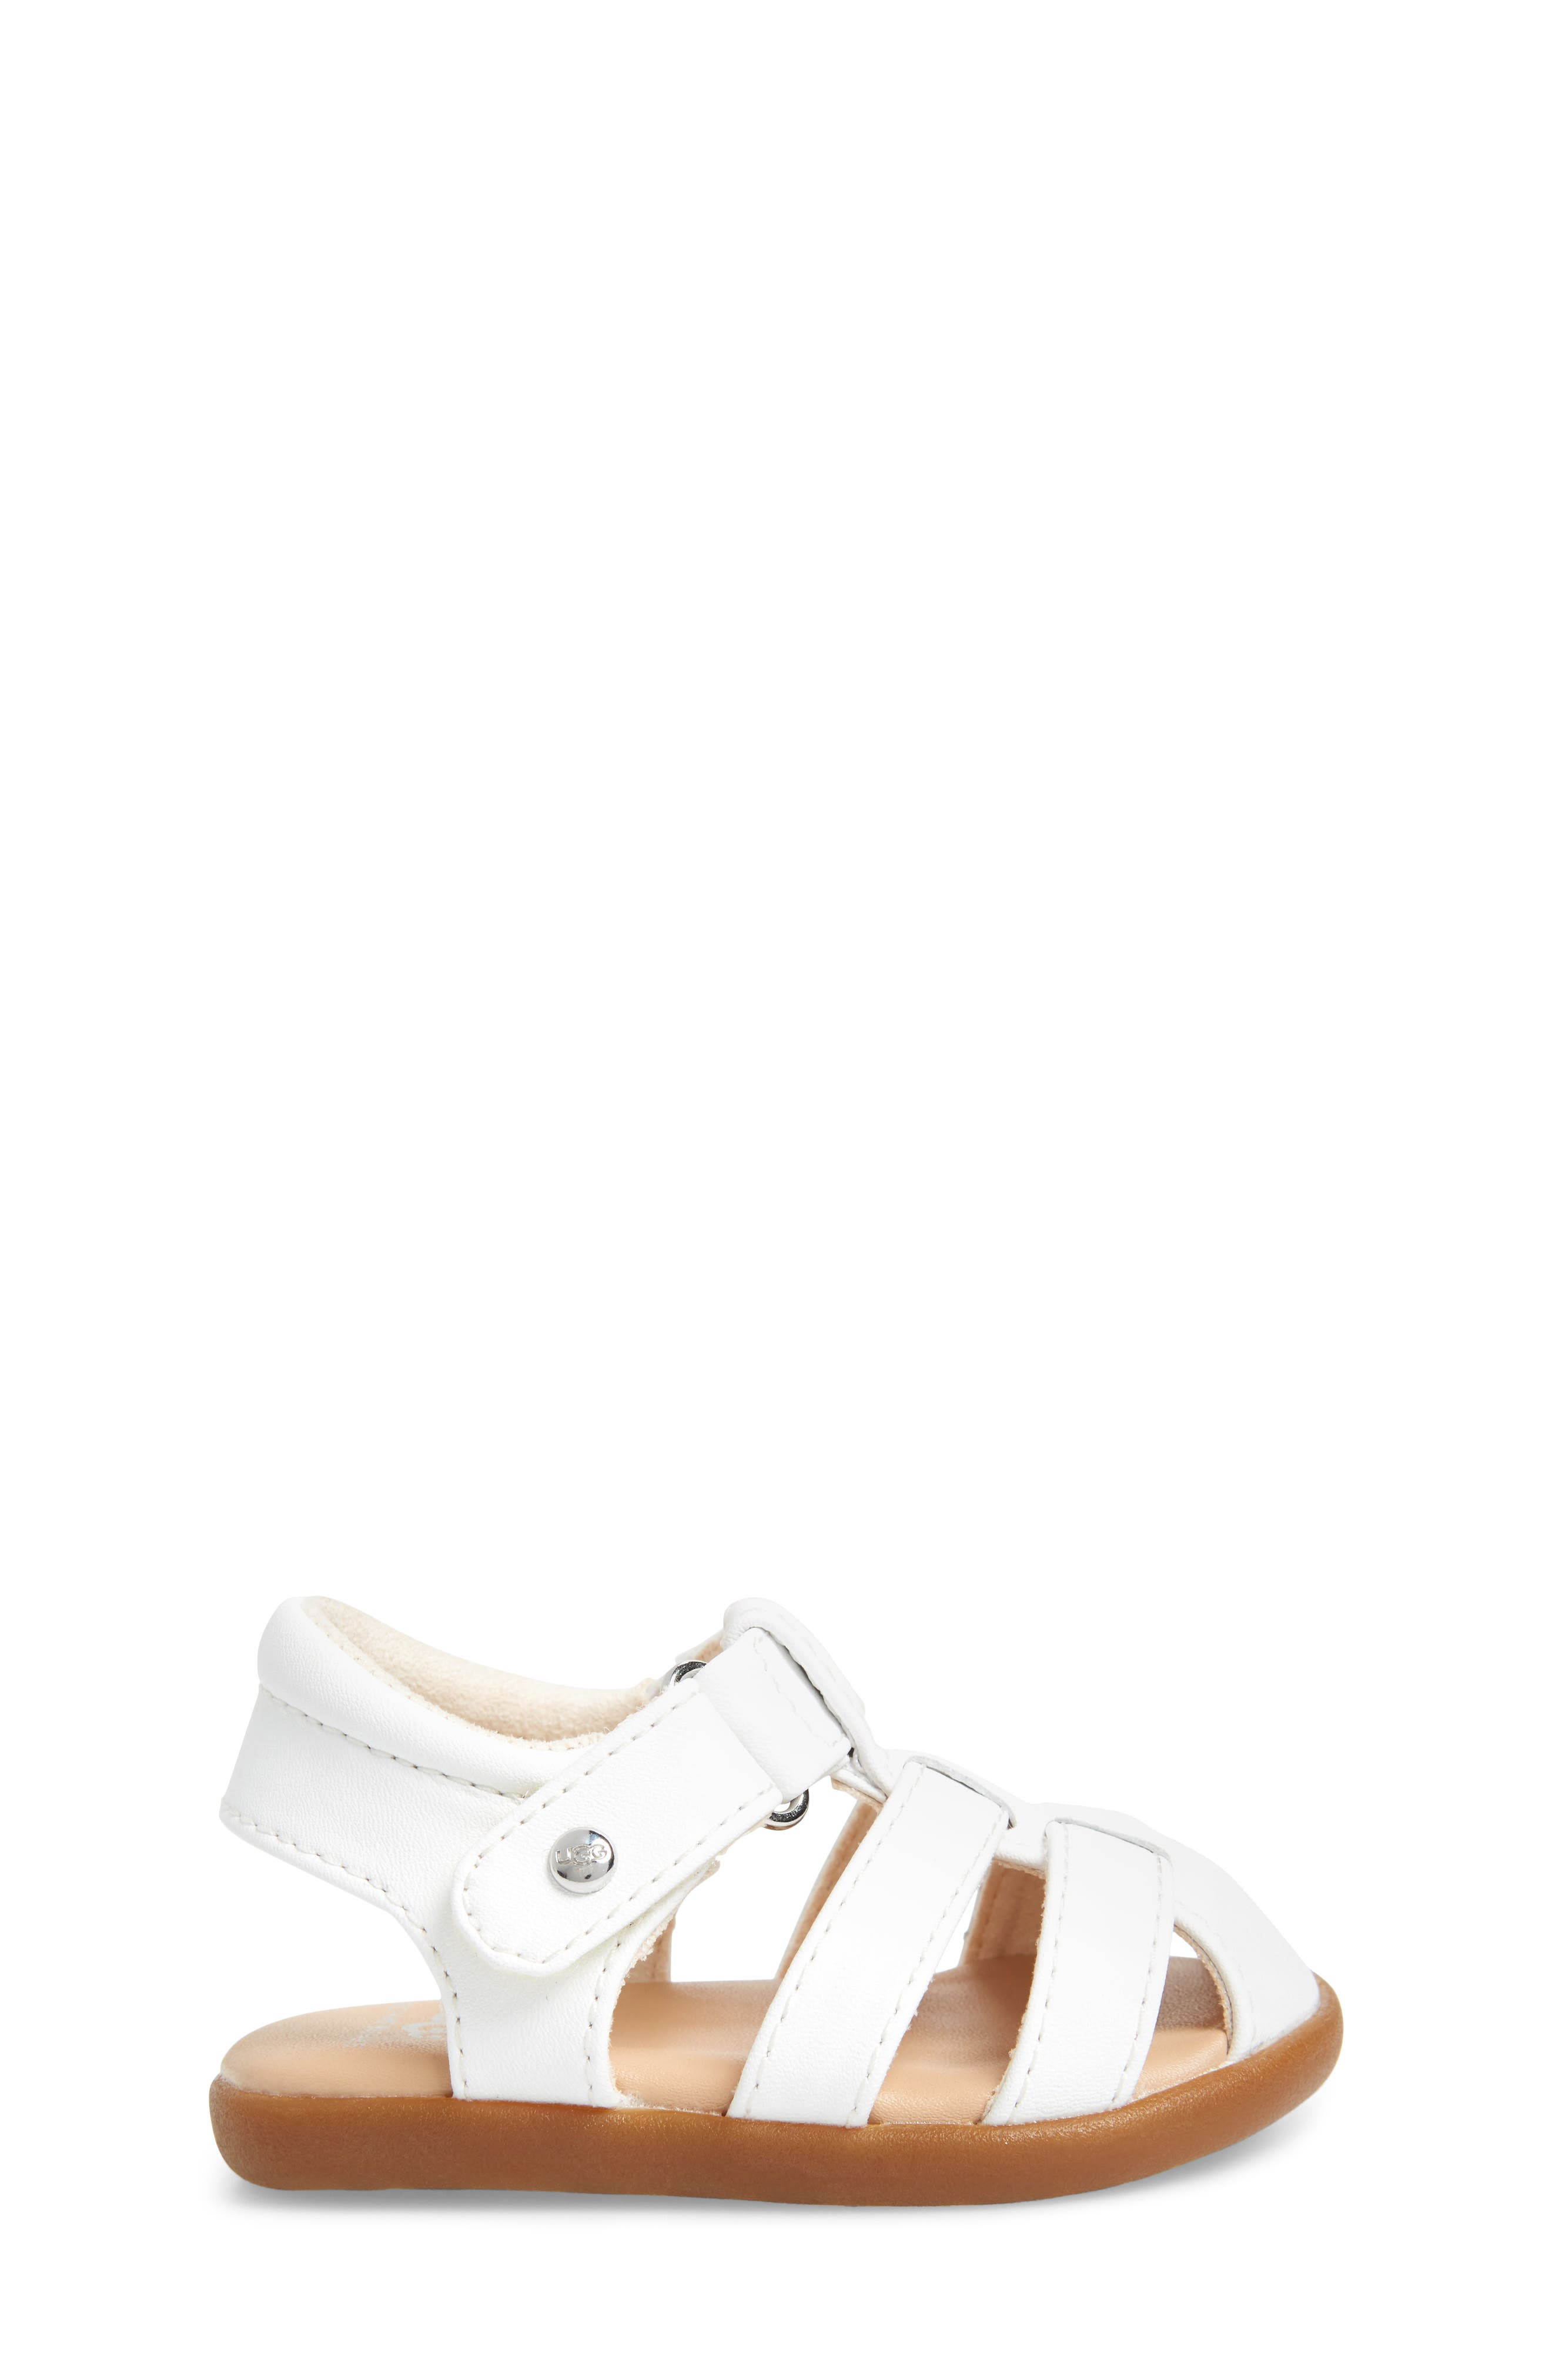 Kolding Fisherman Sandal,                             Alternate thumbnail 3, color,                             WHITE